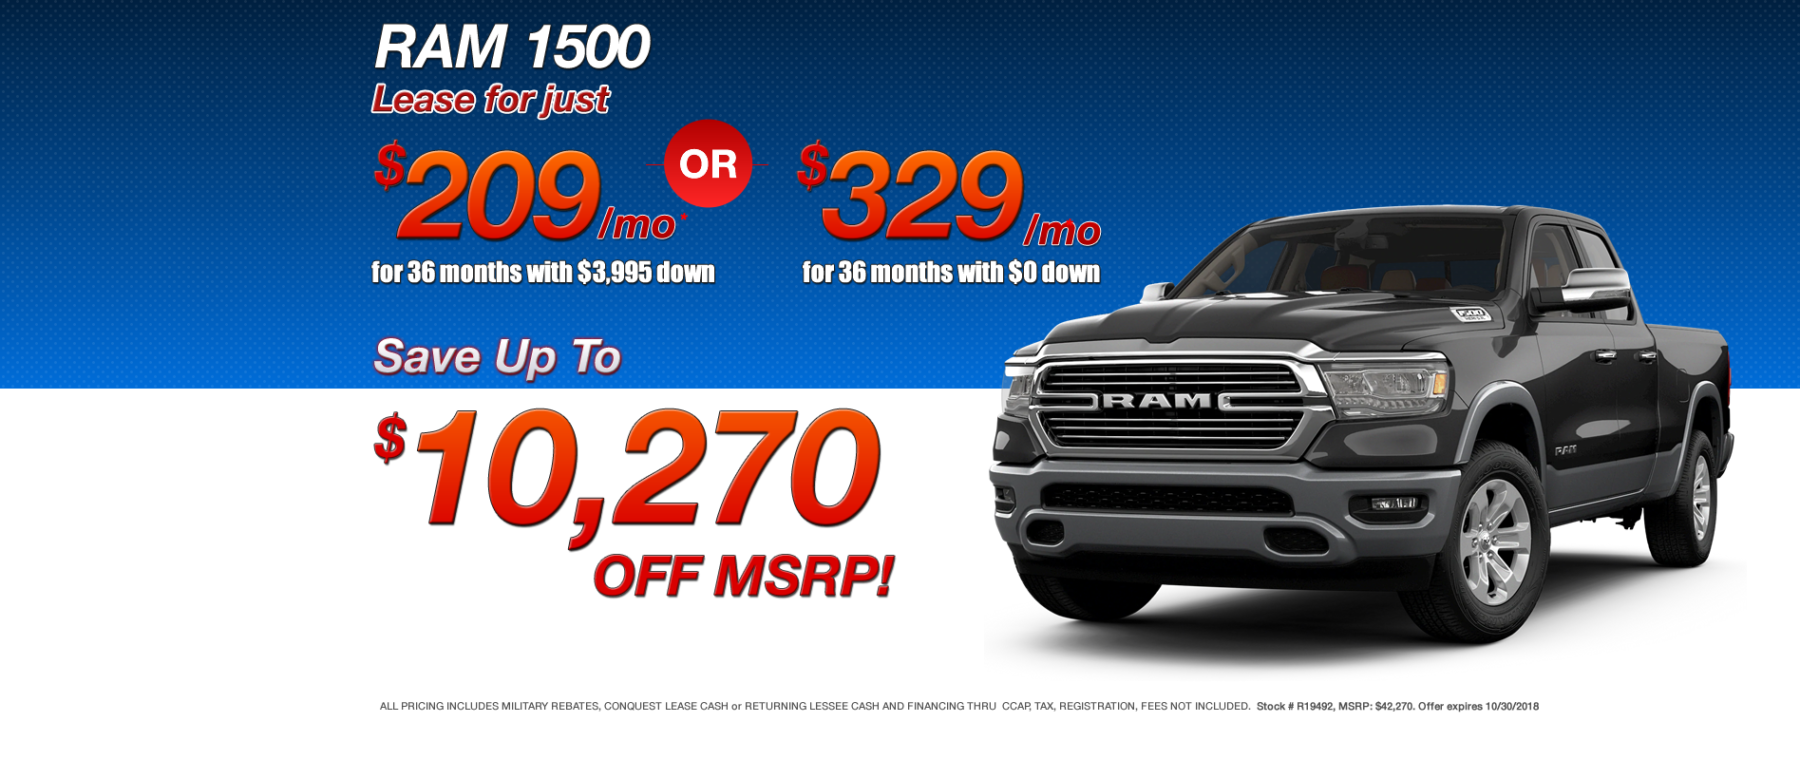 Welcome To Central Chrysler Dodge Jeep Ram Of Raynham!